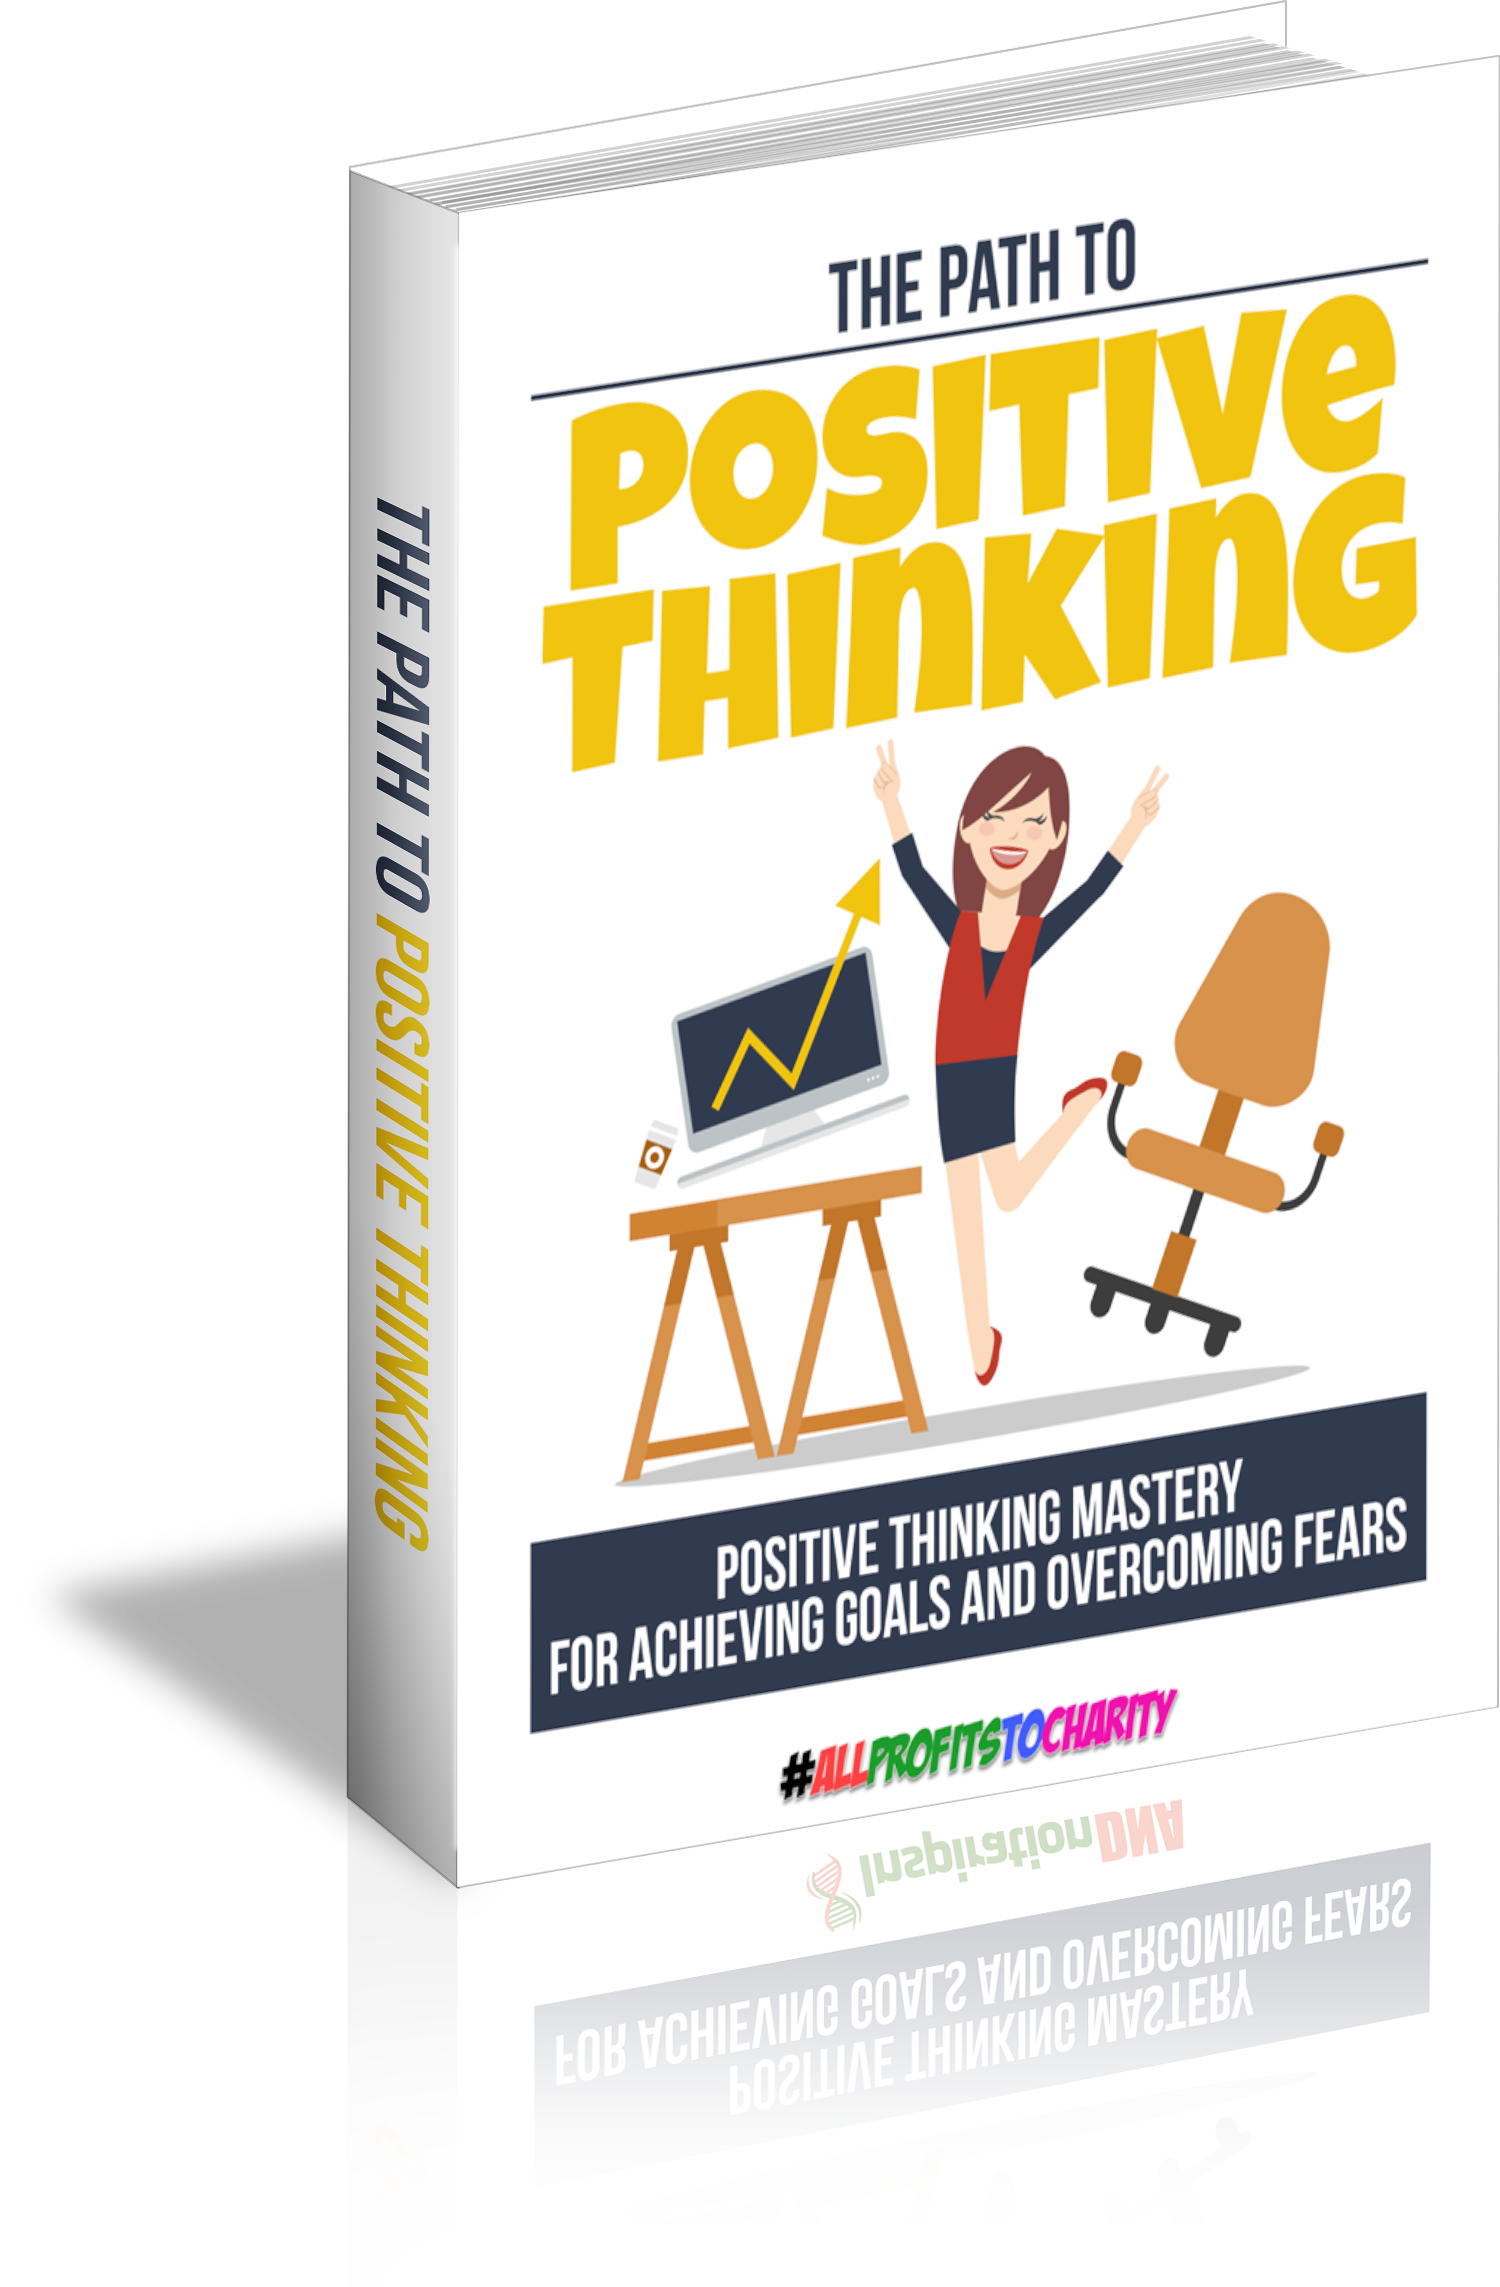 The Path To Positive Thinking cover